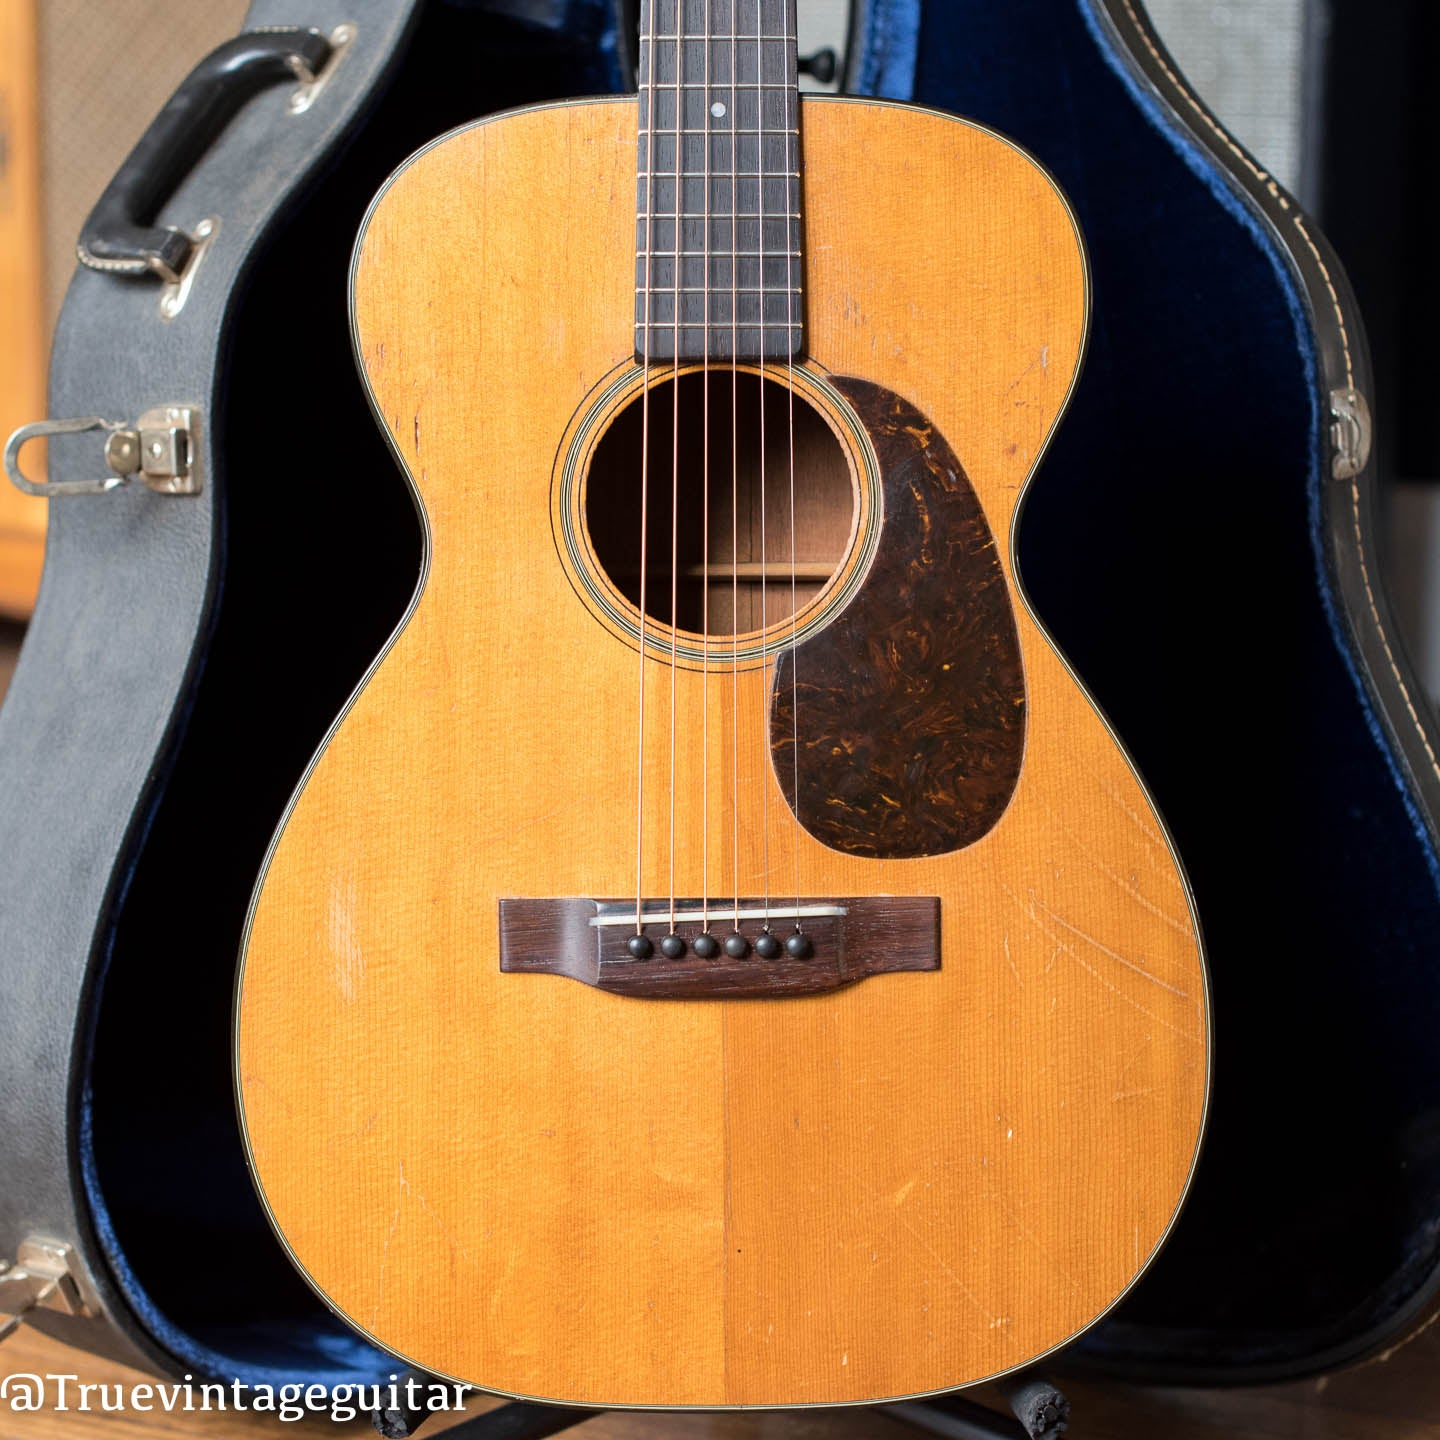 Vintage Martin small body acoustic guitar 1940s